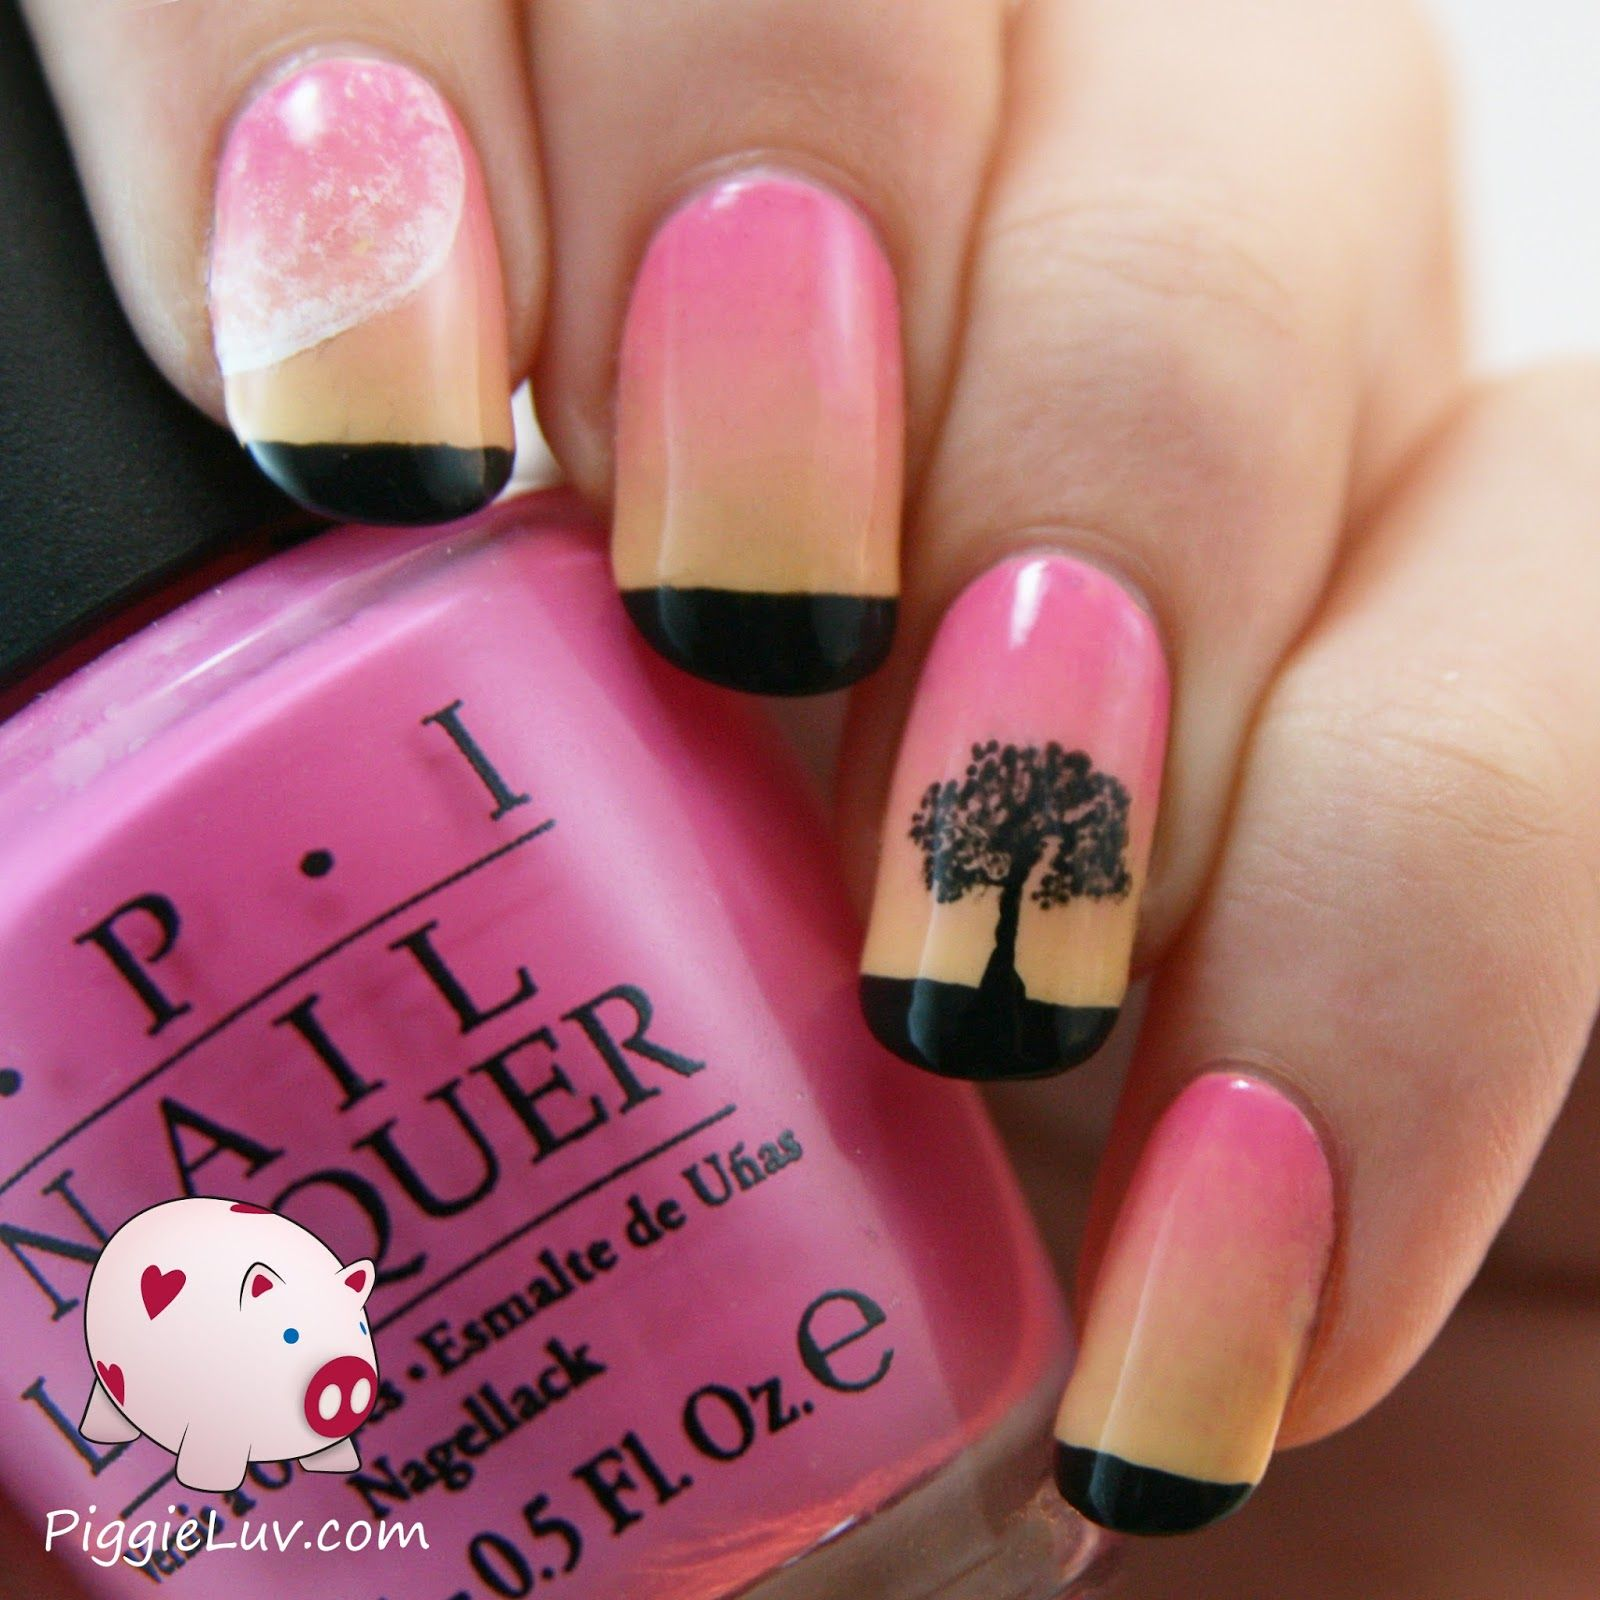 I made this soft sunset nail art using OPI Sparrow Me The Drama and Only You Banana Split. I also used black and white acrylic paint and my new brushes from ProNails Breda! I kind of have a thing for sunset manis with black silhouettes, I really enjoy doing them :D